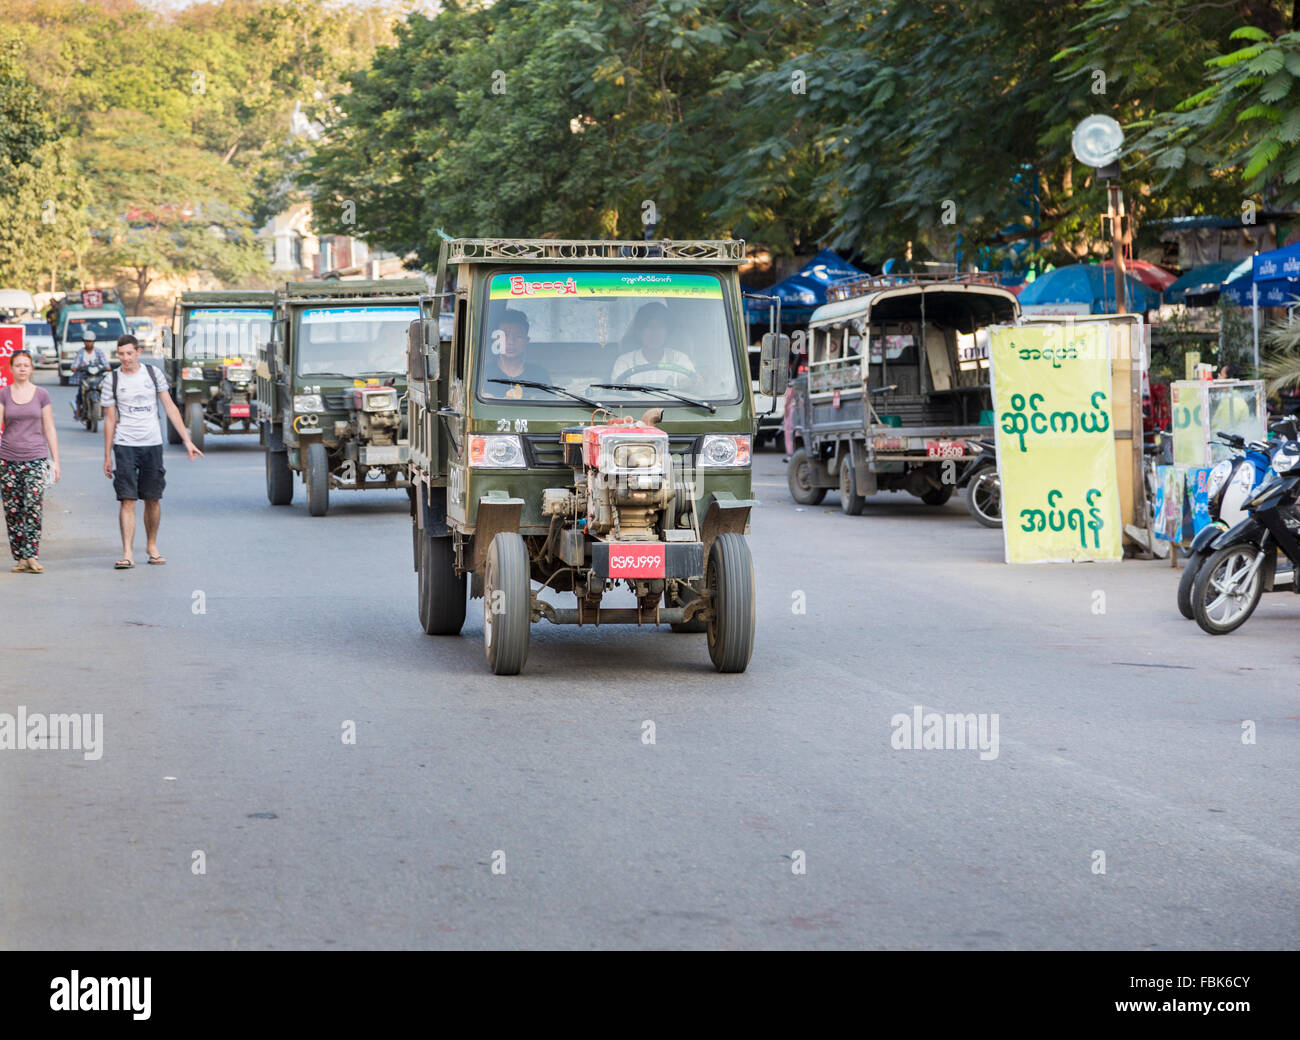 Typical open-fronted Chinese made trucks with air-cooled engine on the street in Mandalay, Myanmar (Burma) - Stock Image